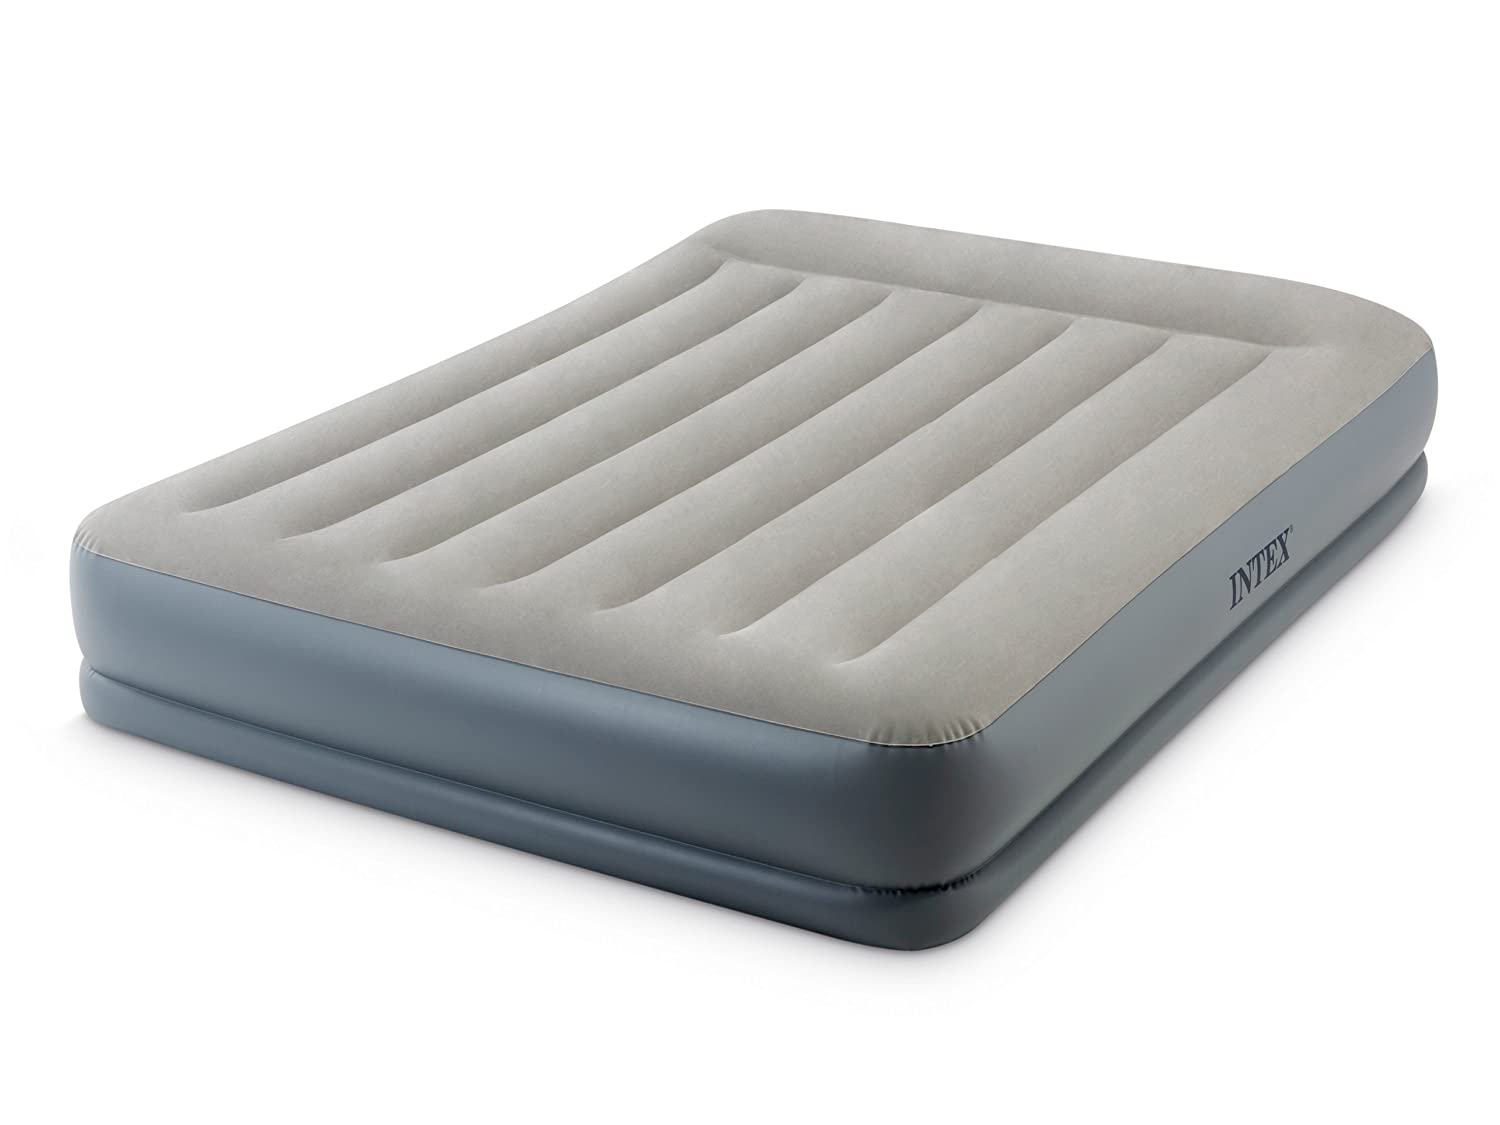 Intex 64118 Queen Size Pillow Rest Mid-Rise Airbed with built in Electric Pump and Fiber-Tech Construction UK Spec INTEX INDUSTRIES (XIAMEN) CO. LTD. 64118BS